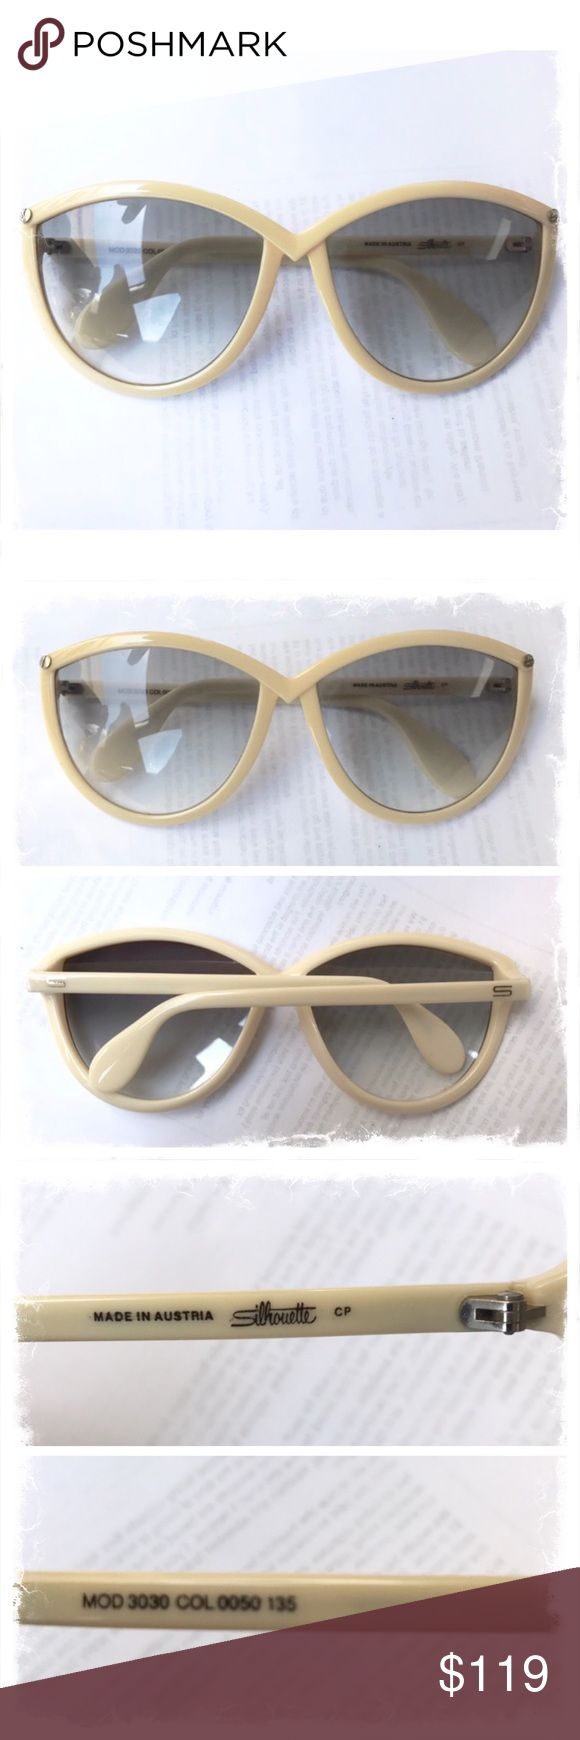 Vintage Silhouette Sunglasses, Ivory, Cateye Vintage Sunglasses by Silhouette, Made in Austria, 1980's   Model #3030 Color: Ivory  Inner Arm Right: MOD3030 Col 0050 135 Inner Arm Left: Made in Austria, Silhouette  Minor flaw- on the inside corners of each lens there is a little wear from where the arms have closed. Looking through them they seem perfectly clear but I wanted to point it out.  I wouldn't sell them if I wouldn't buy them, if that makes ya feel better. That said, pricing taking…